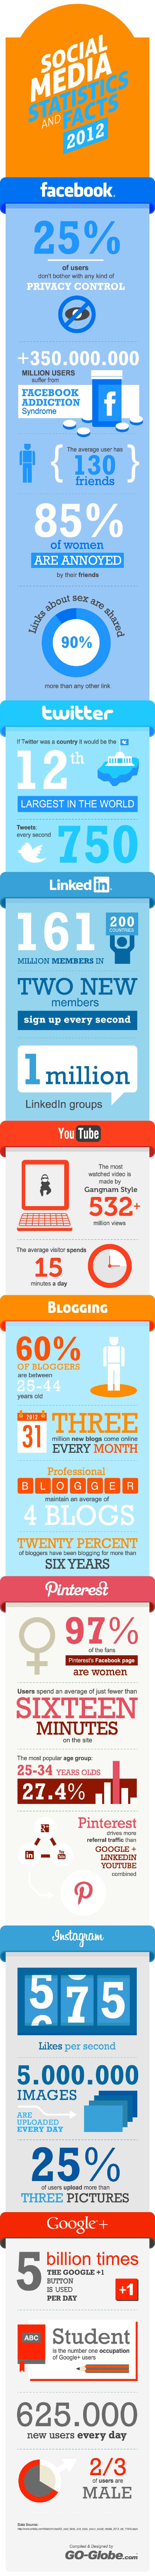 The latest social media statistics for 2012 [infographic]